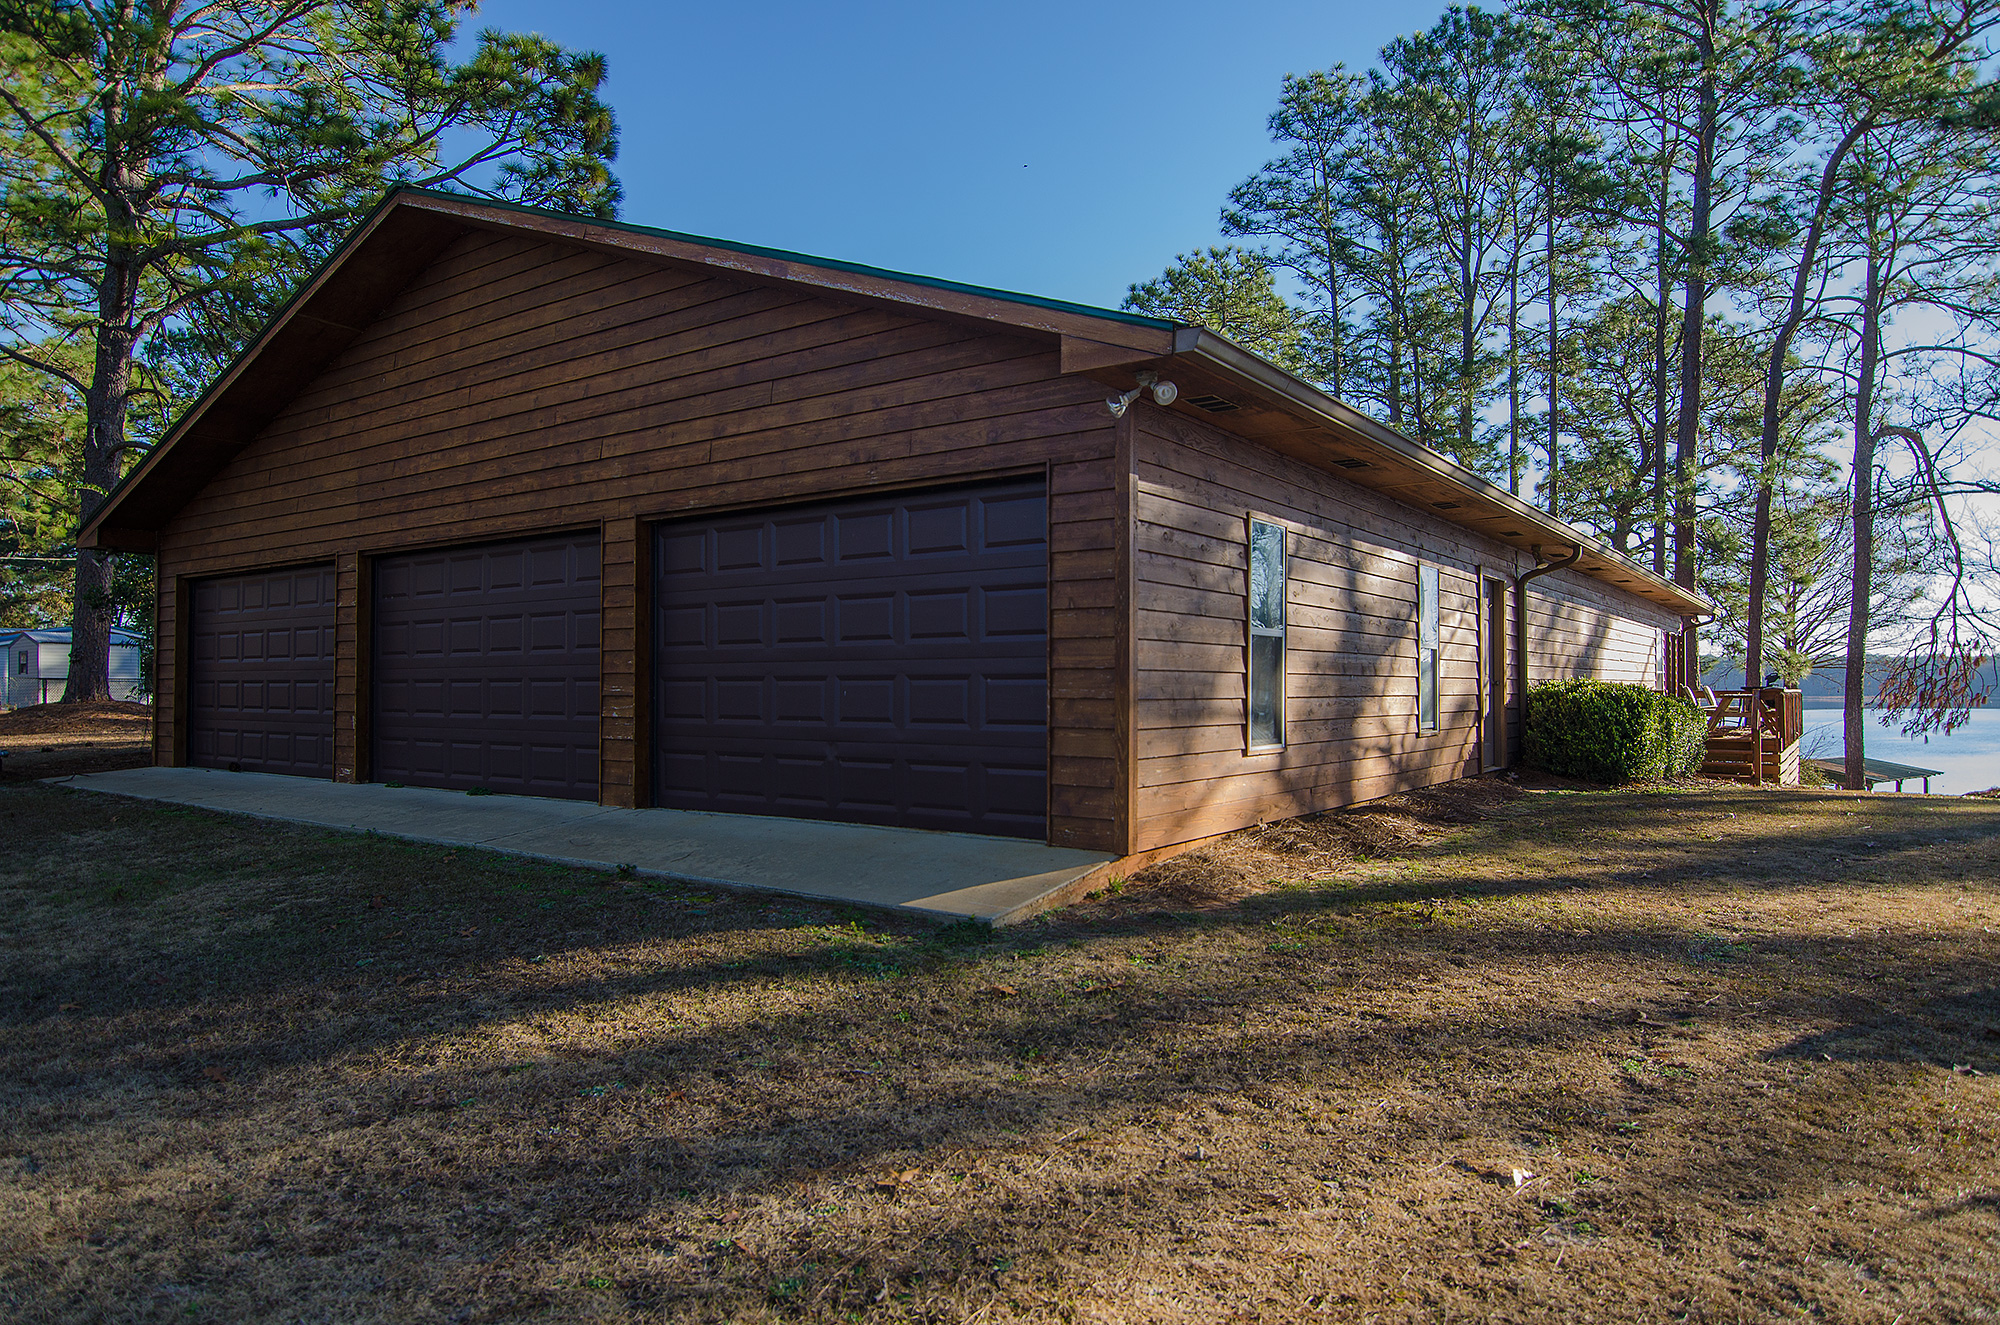 3riversrealty,spring-creek,watefront,south-georgia,lake-seminole,vacation-home,street-view,mills-brock.jpg